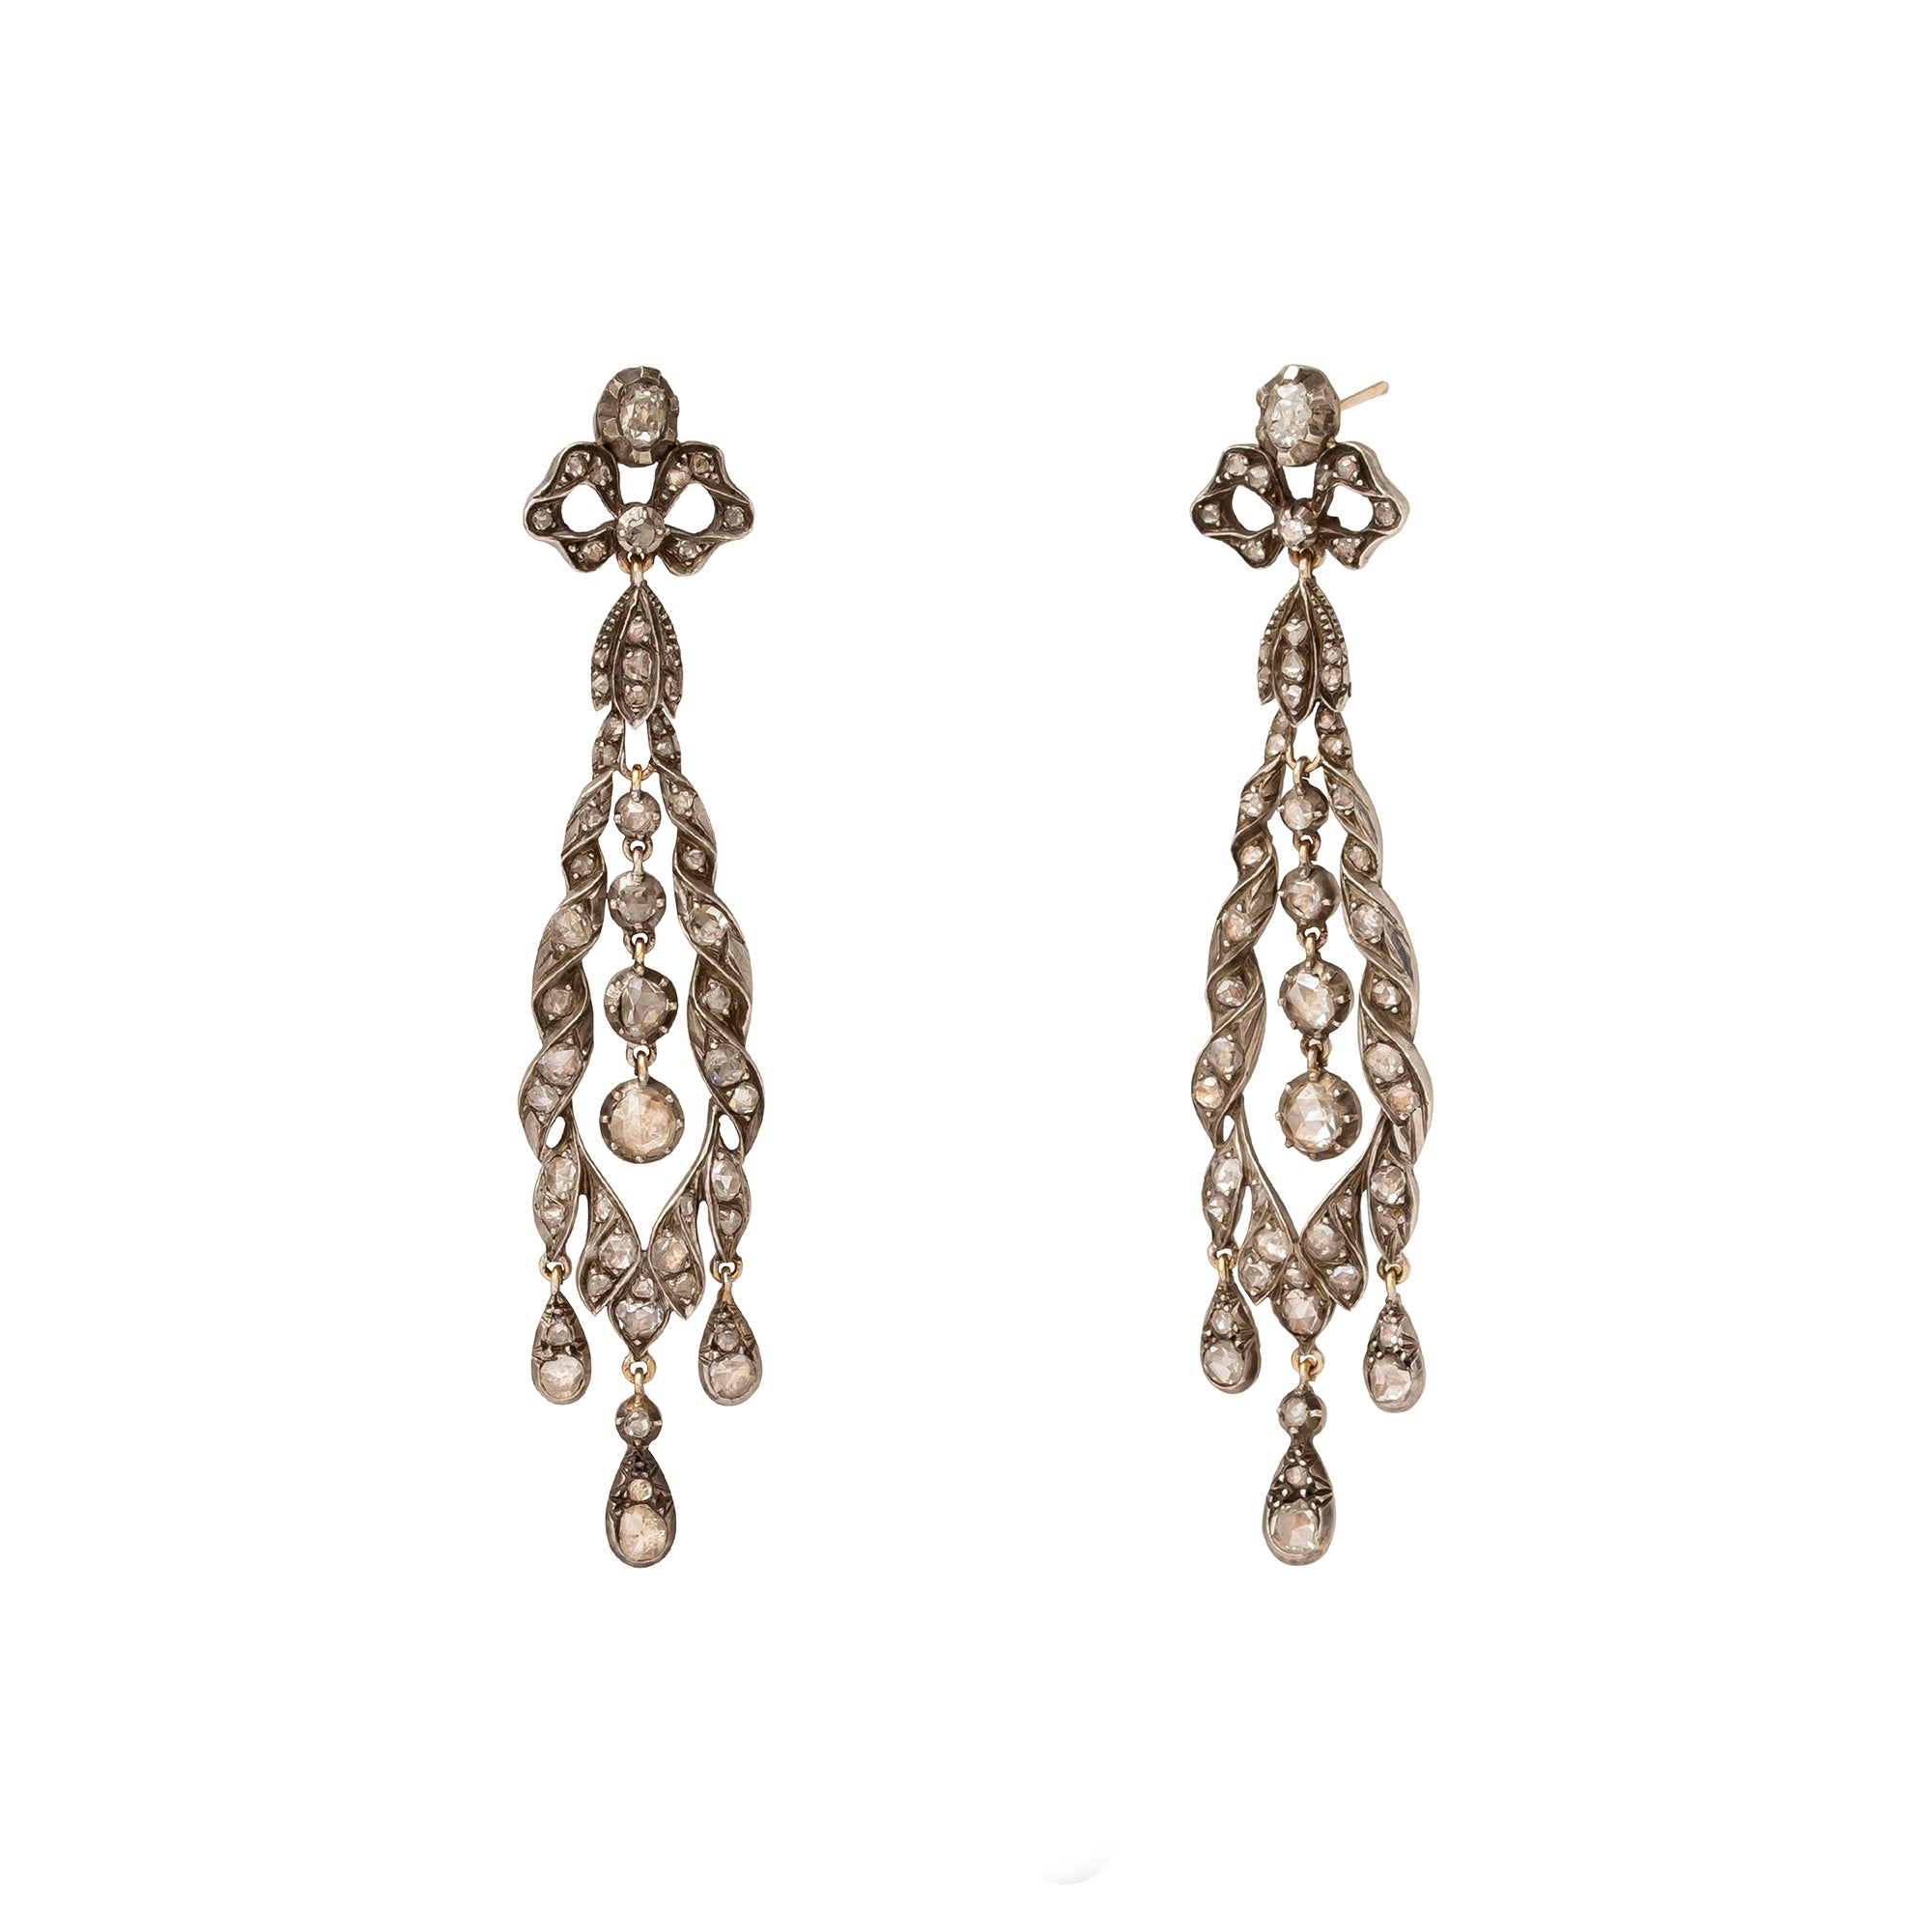 "Antique & Vintage Jewelry 19th Century ""Girandole"" Georgian Earrings - Earrings - Broken English Jewelry"